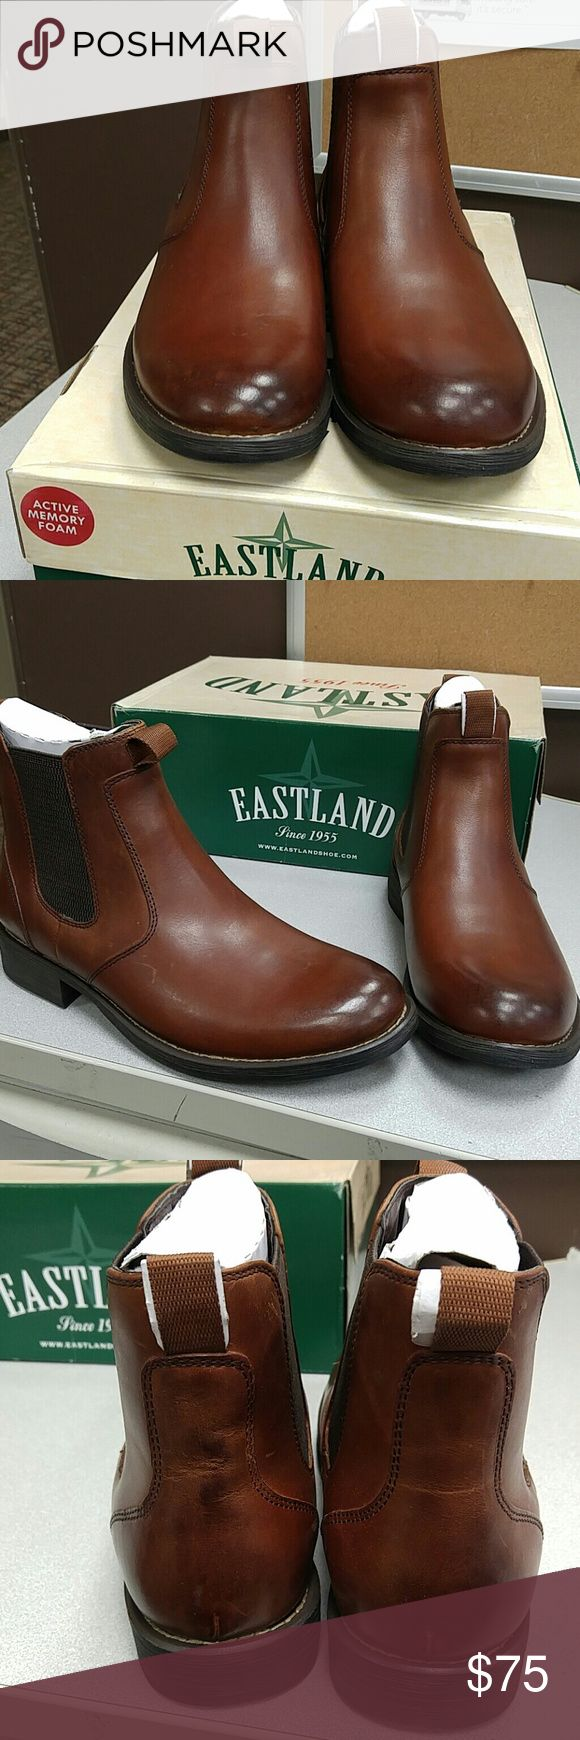 Eastland Men's Daily Double leather Ankle Boots Eastland Men's Daily Double leather Ankle Boots. New in box Eastland Shoes Boots